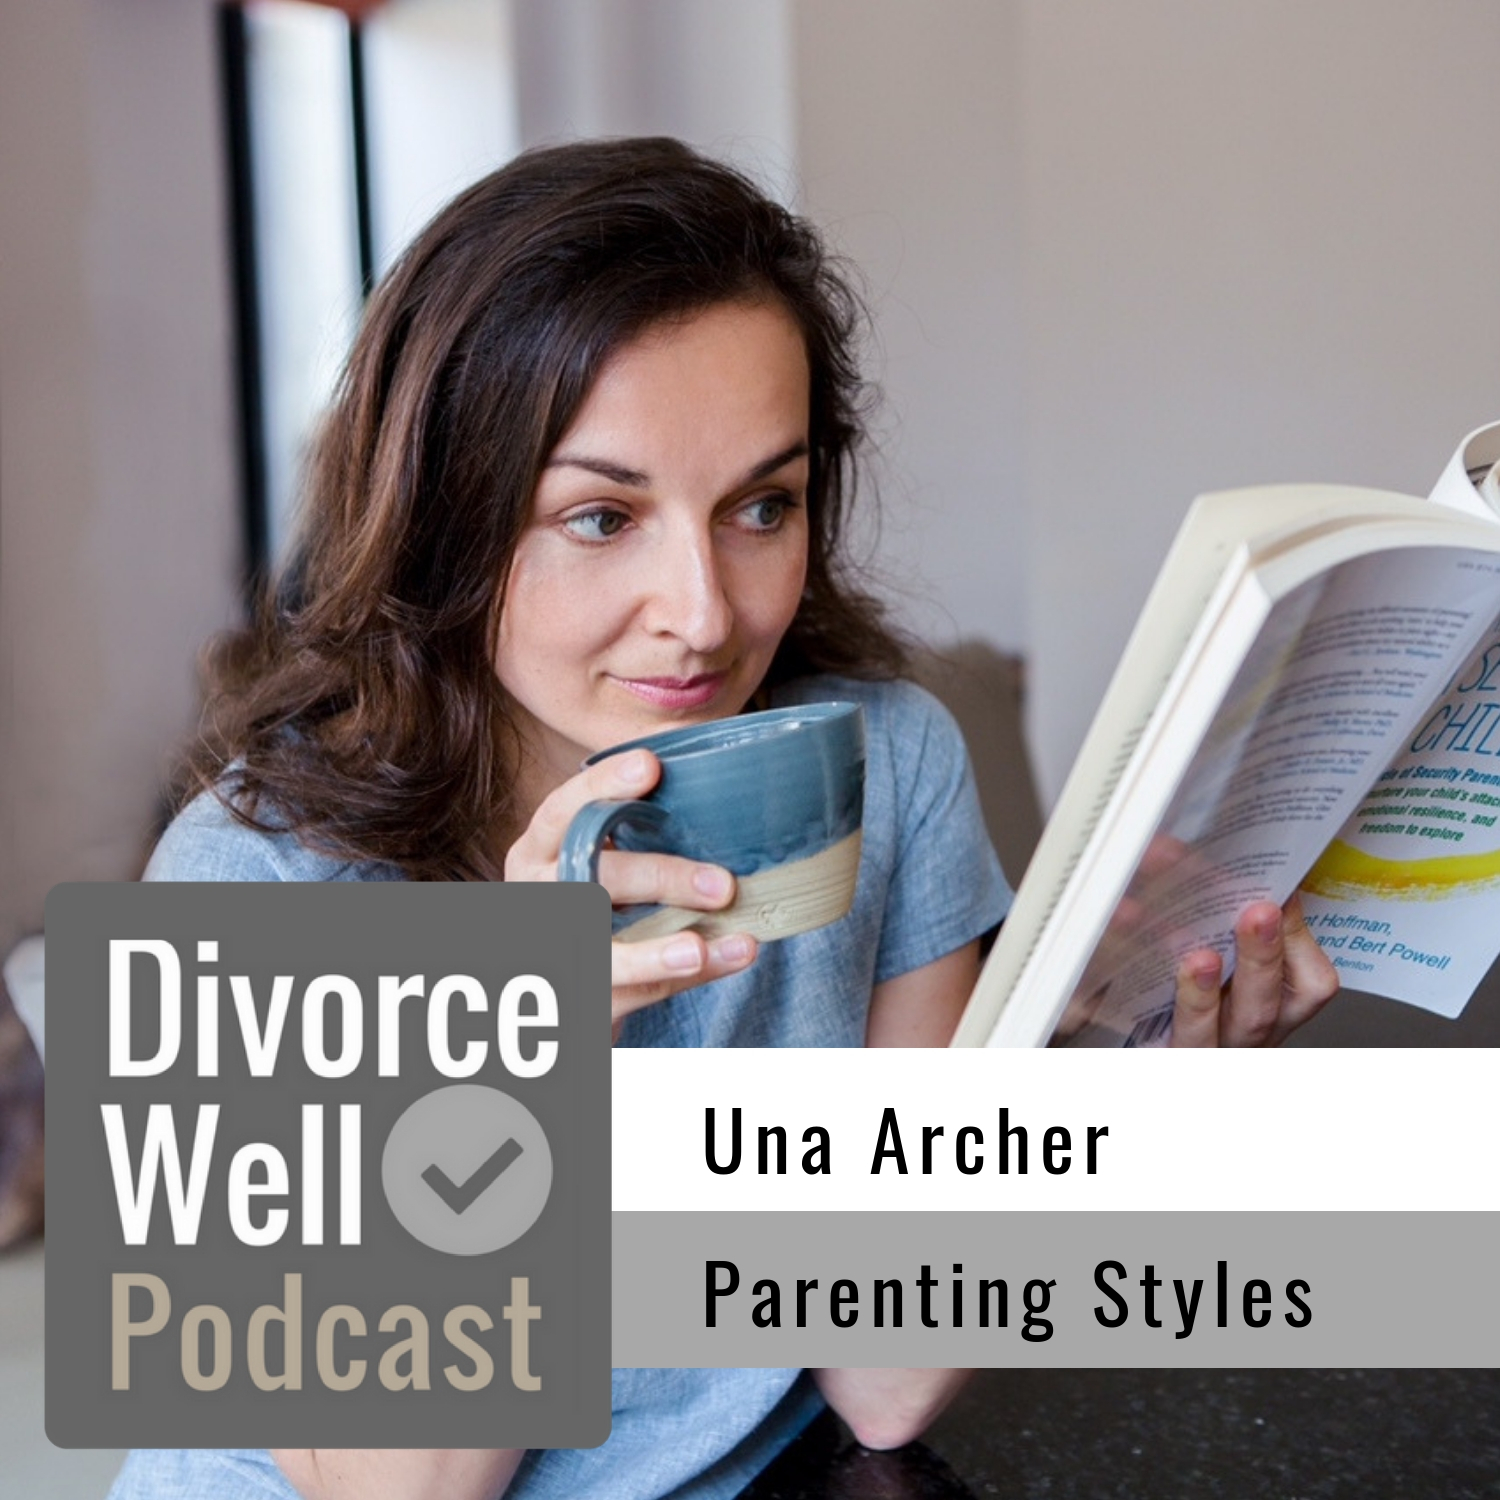 The Divorce Well Podcast - 26 - Successful Co-Parenting with Differing Parenting Styles, with Una Archer